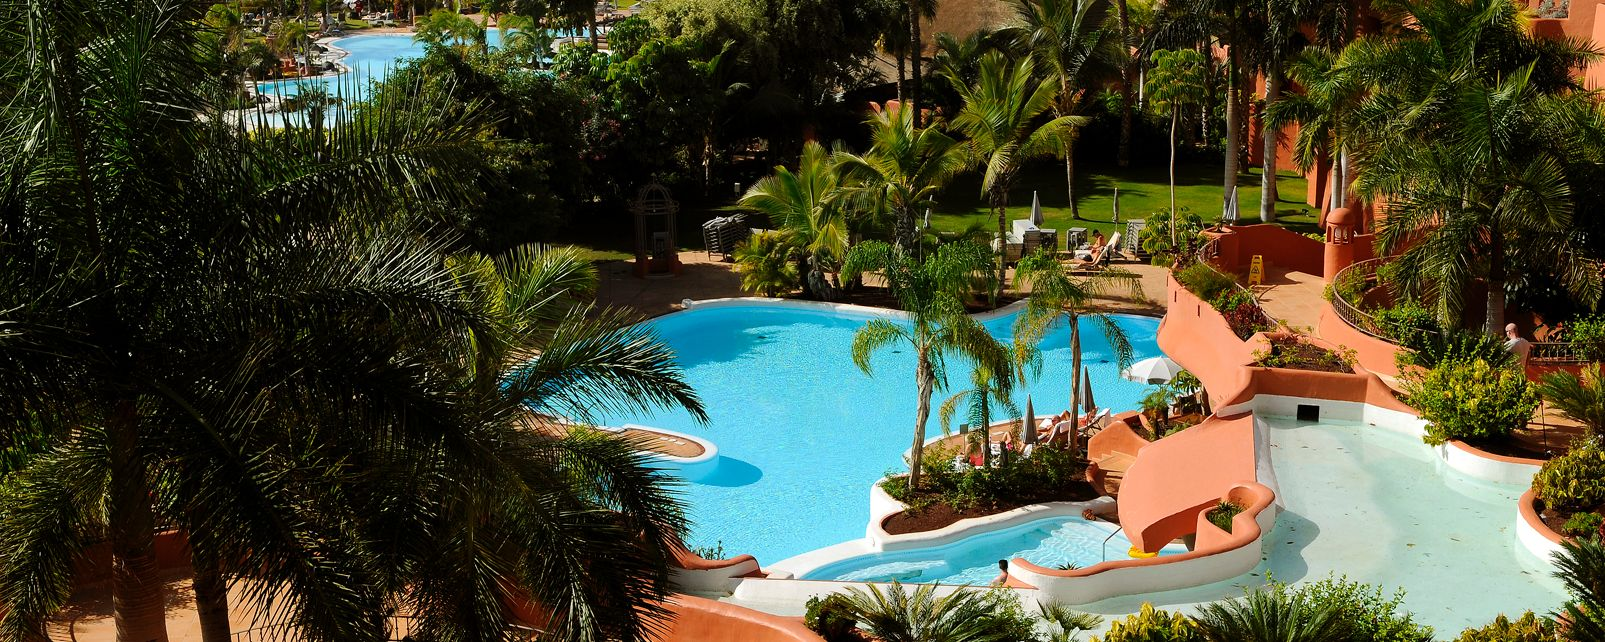 Hotel Sheraton La Caleta Resort and Spa